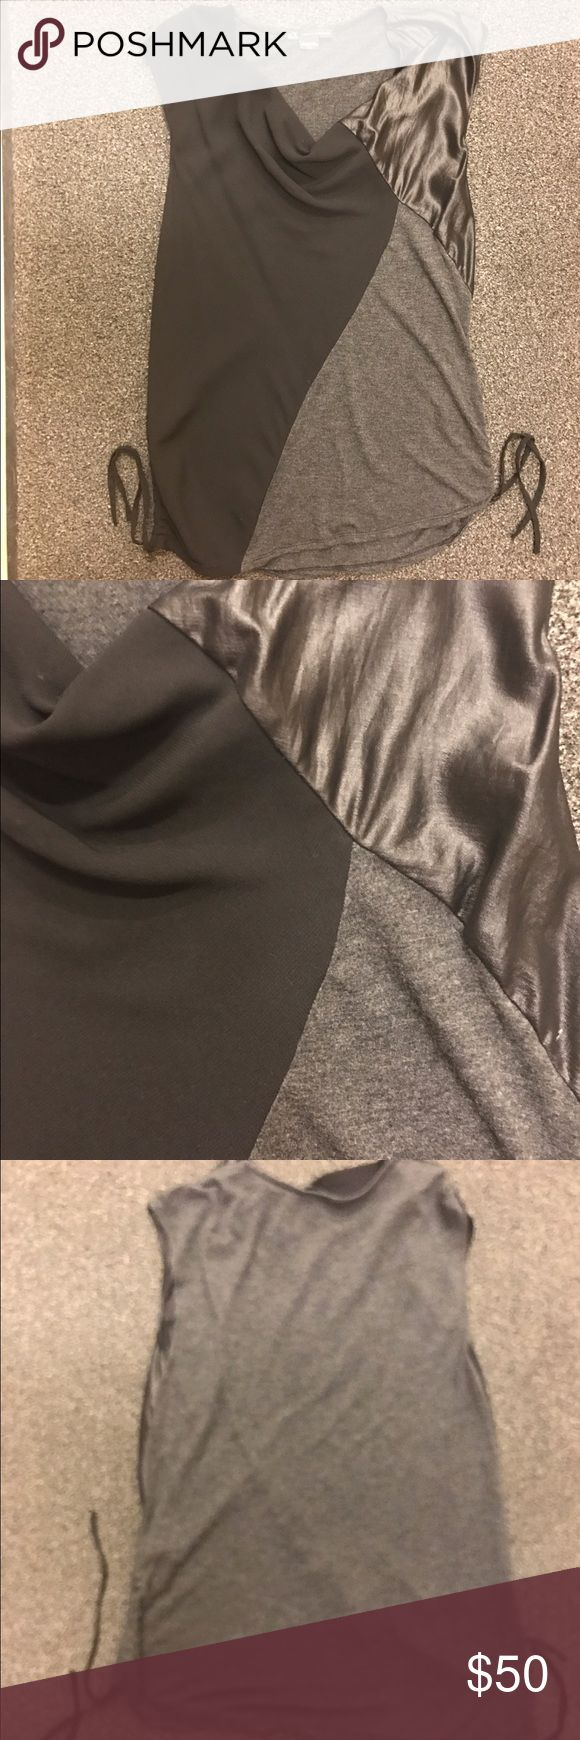 Selling this AX Armani Exchange small grey top with tie sides on Poshmark! My username is: wendydelker. #shopmycloset #poshmark #fashion #shopping #style #forsale #A/X Armani Exchange #Tops